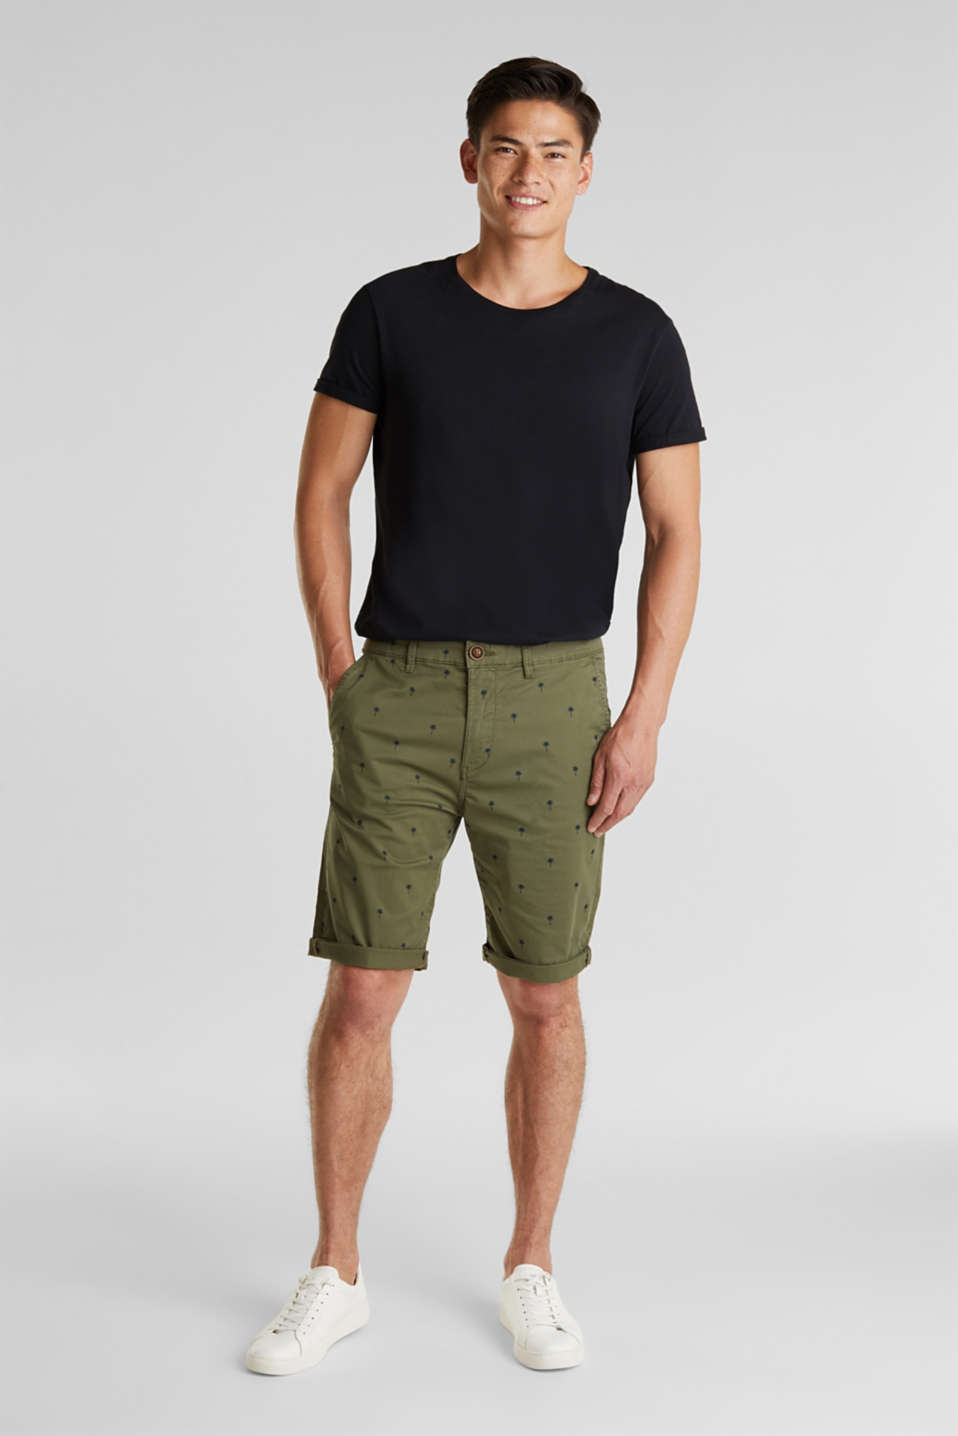 Shorts with a palm tree print, OLIVE 4, detail image number 1